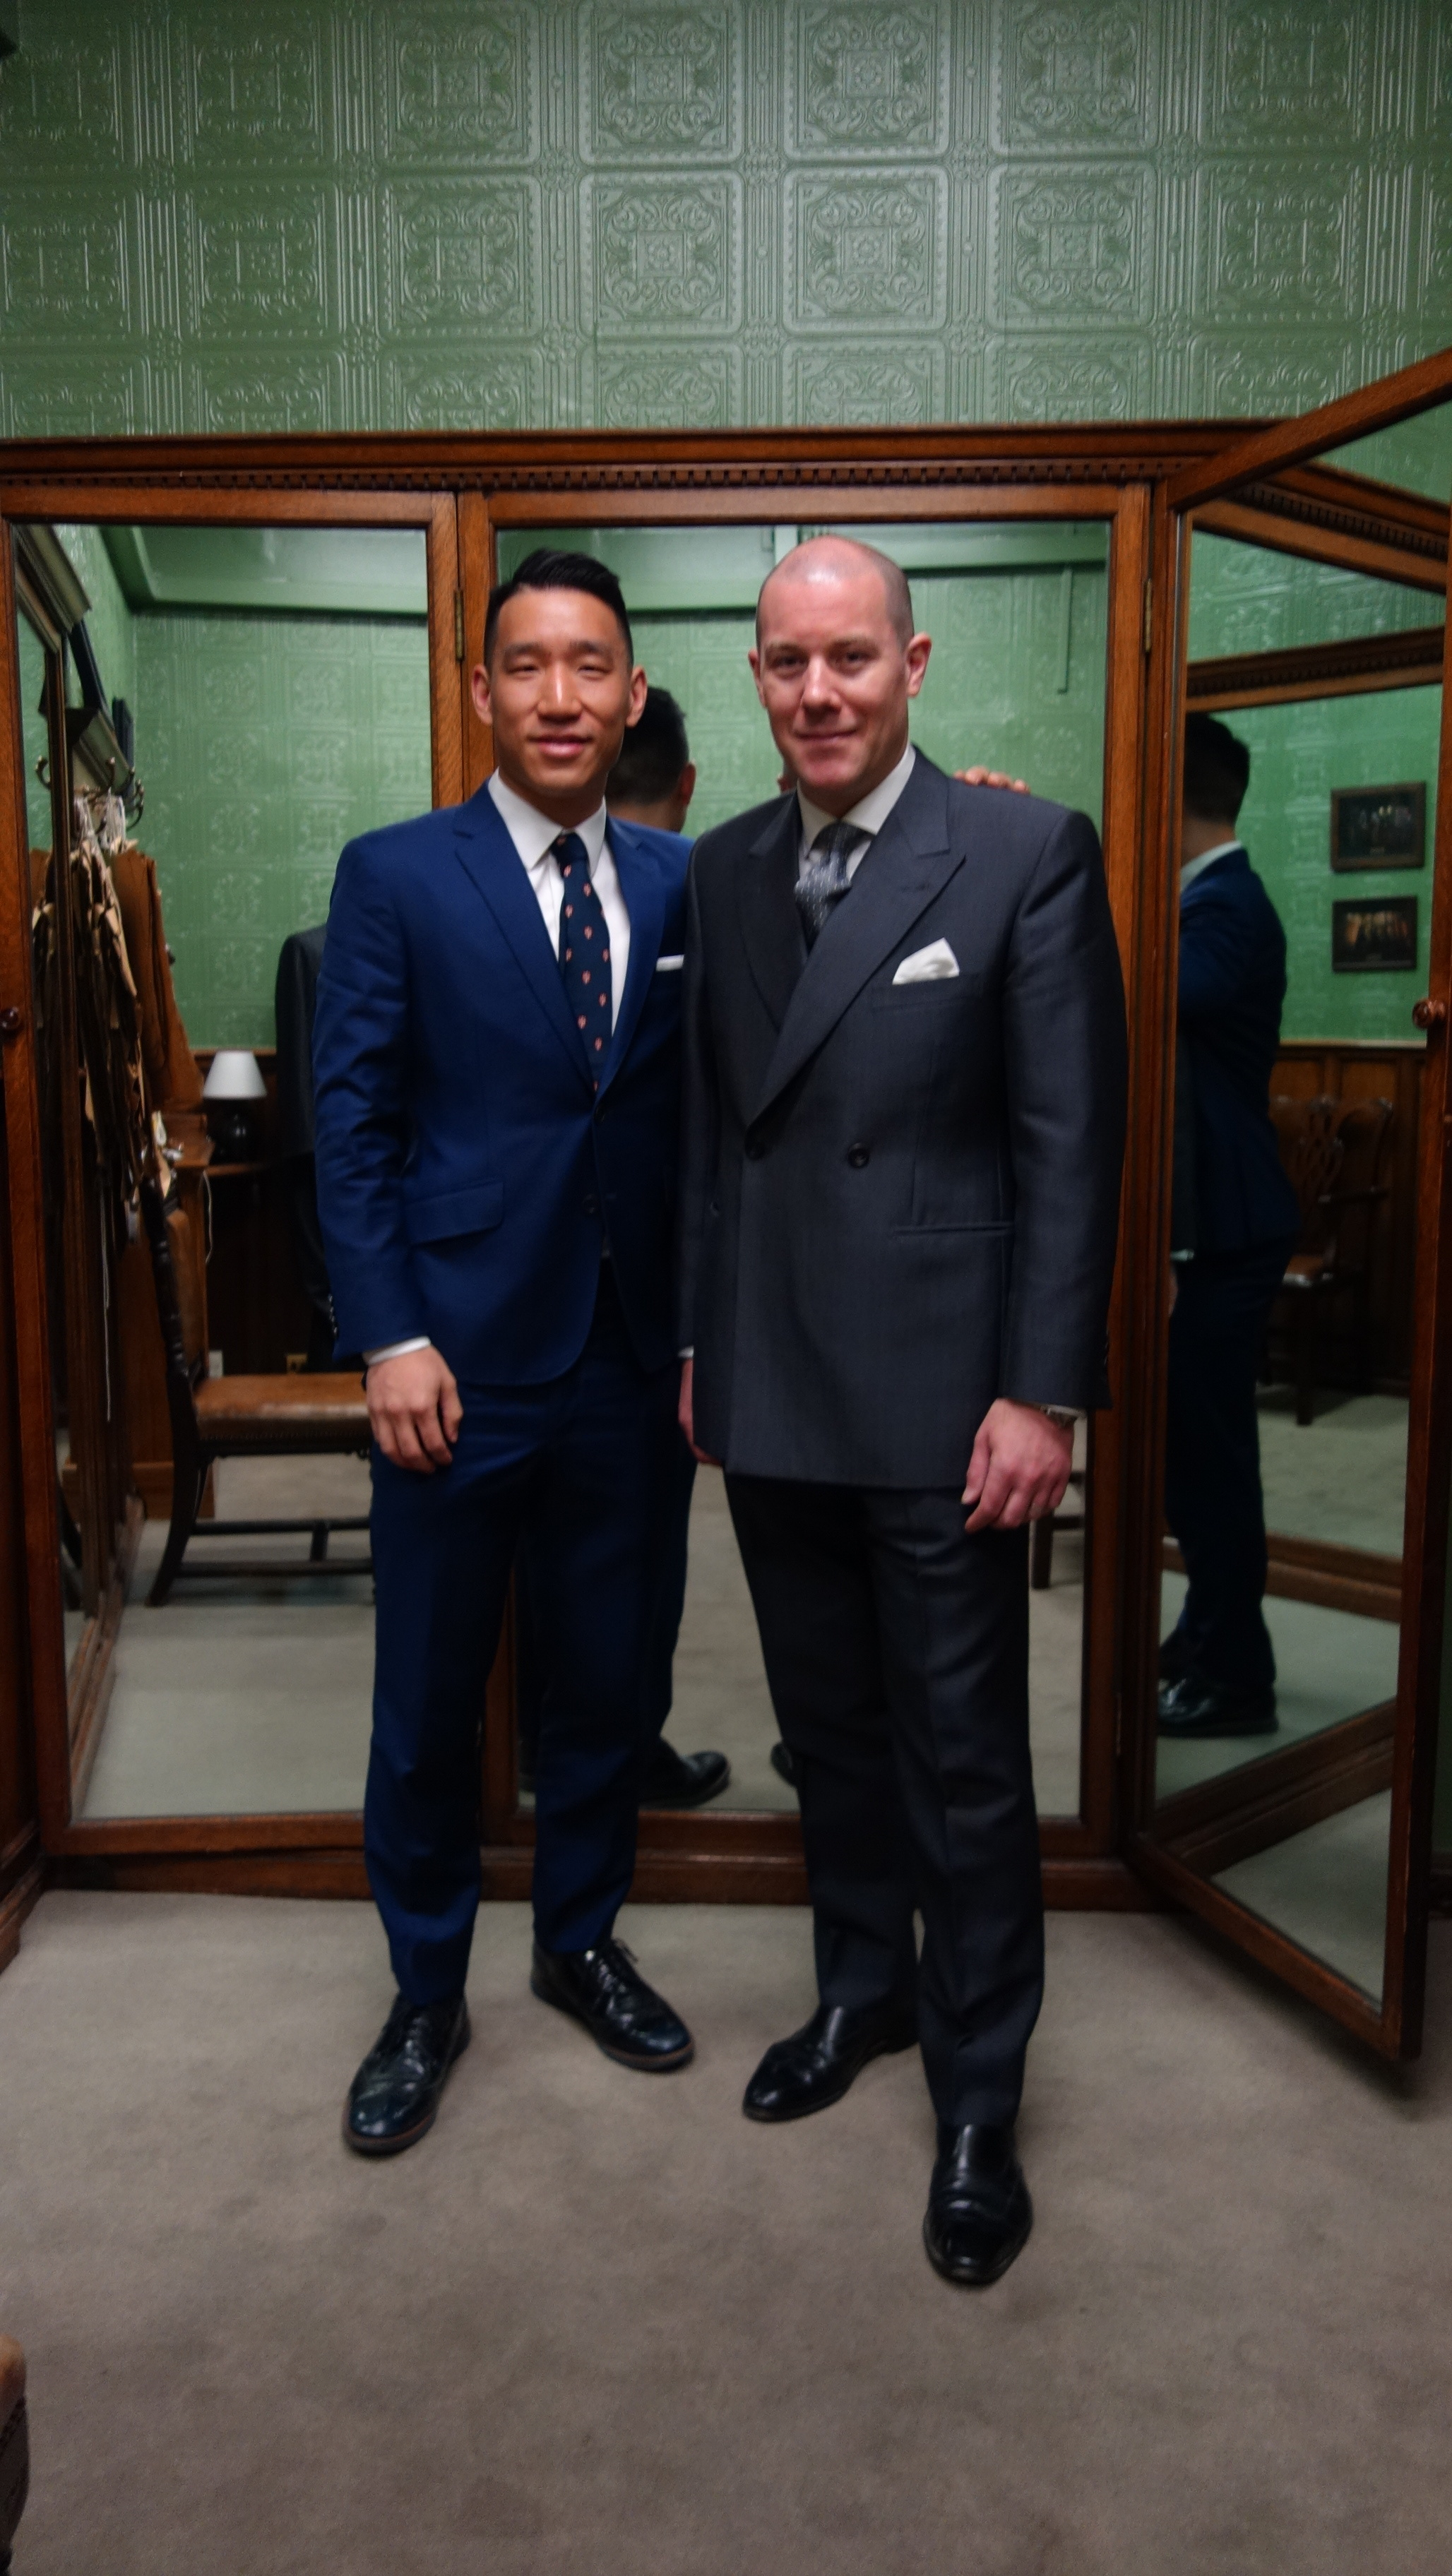 With Huntsman co-Head Cutter Dario Carnera, in the iconic fitting room that led to the secret underground lair in Kingsman